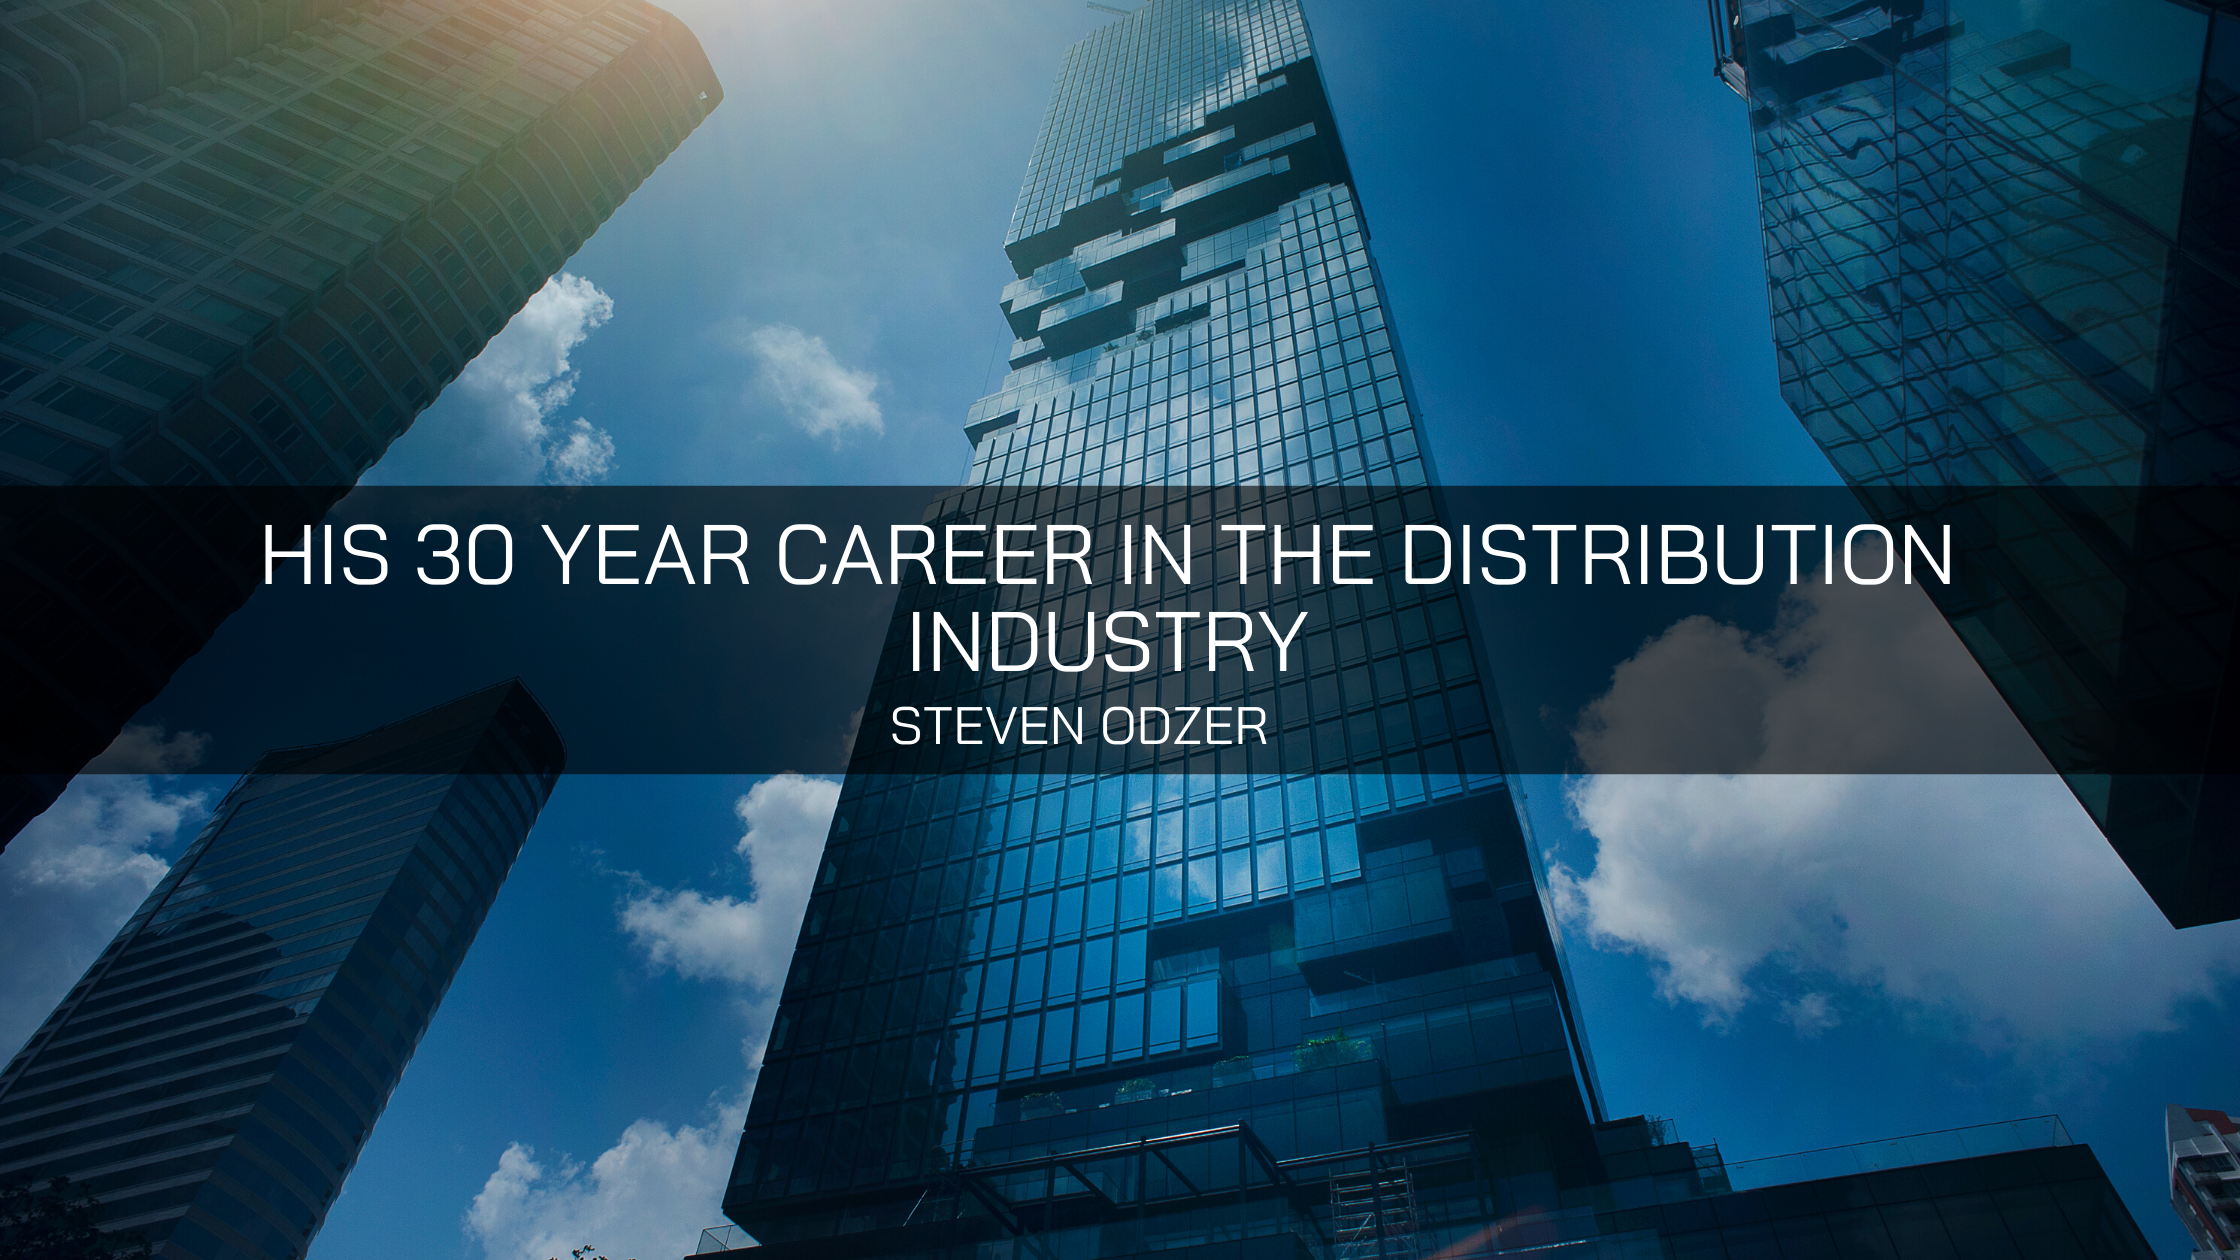 How Steven Odzer Built Multiple Companies in His 30 Year Career in the Distribution Industry